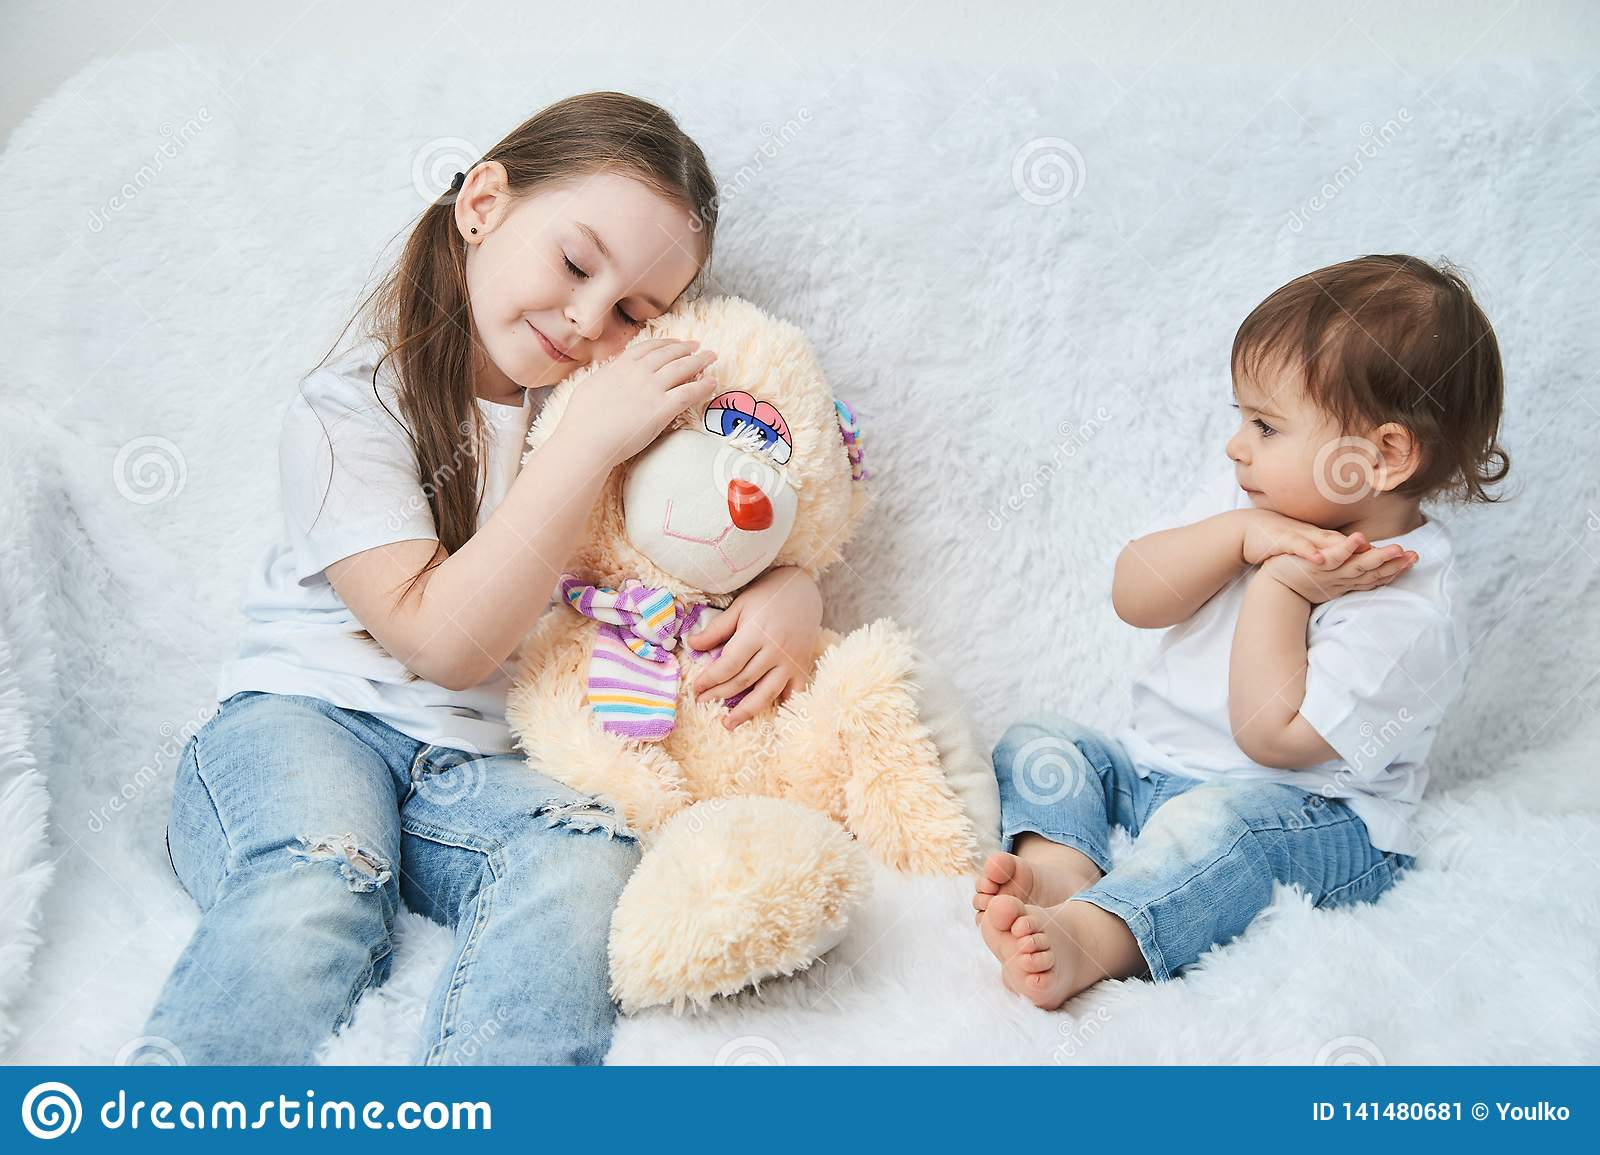 Two children, sisters play on a white sofa in white t-shirts and blue jeans. Soft plush Bunny